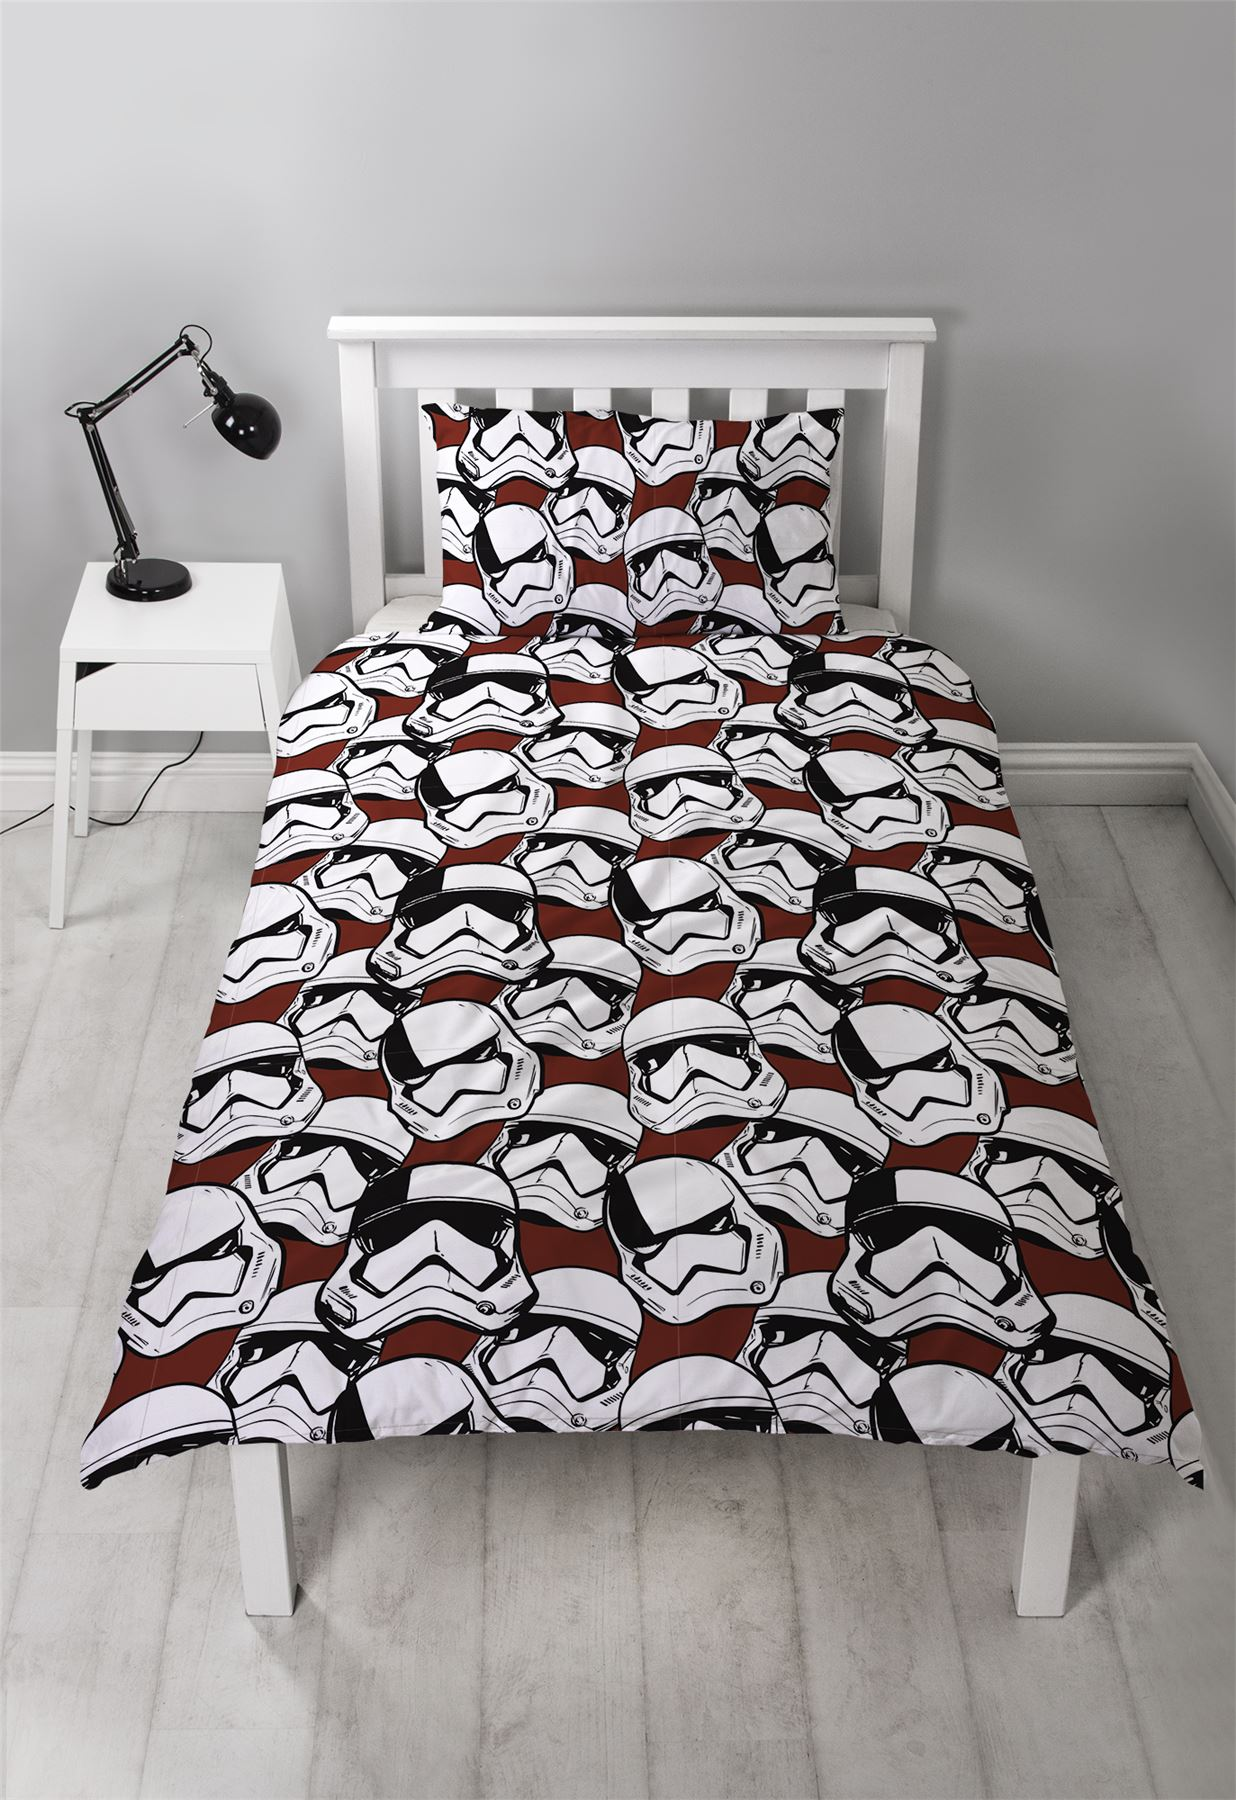 Official-Star-Wars-Licensed-Duvet-Covers-Single-Double-Jedi-Darth-Vader-Lego thumbnail 53